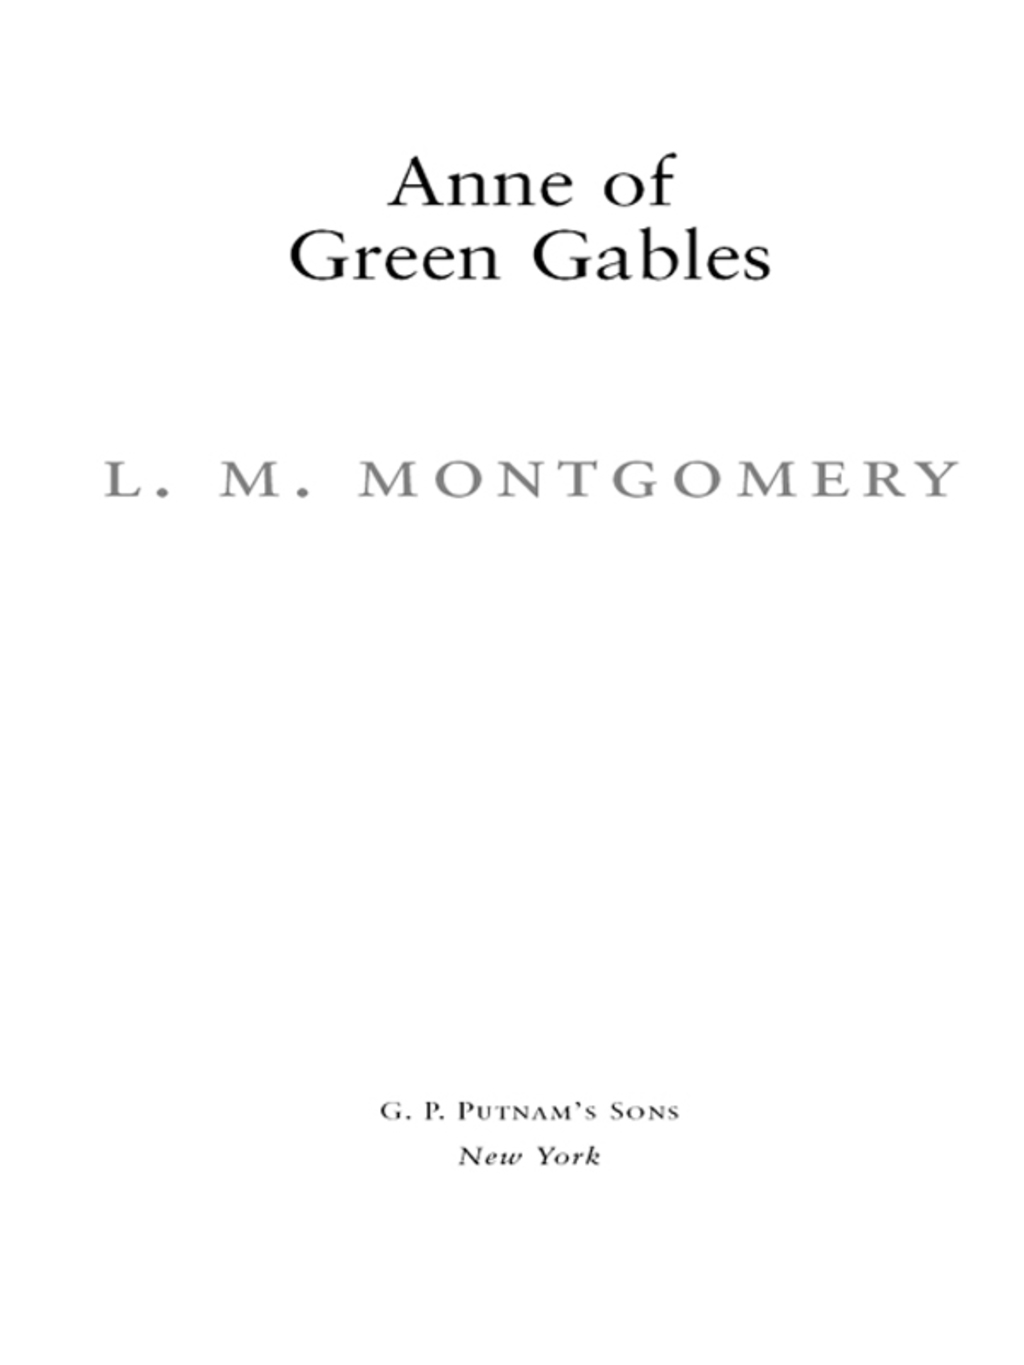 Anne of Green Gables, 100th Anniversary Edition (ebook) eBooks